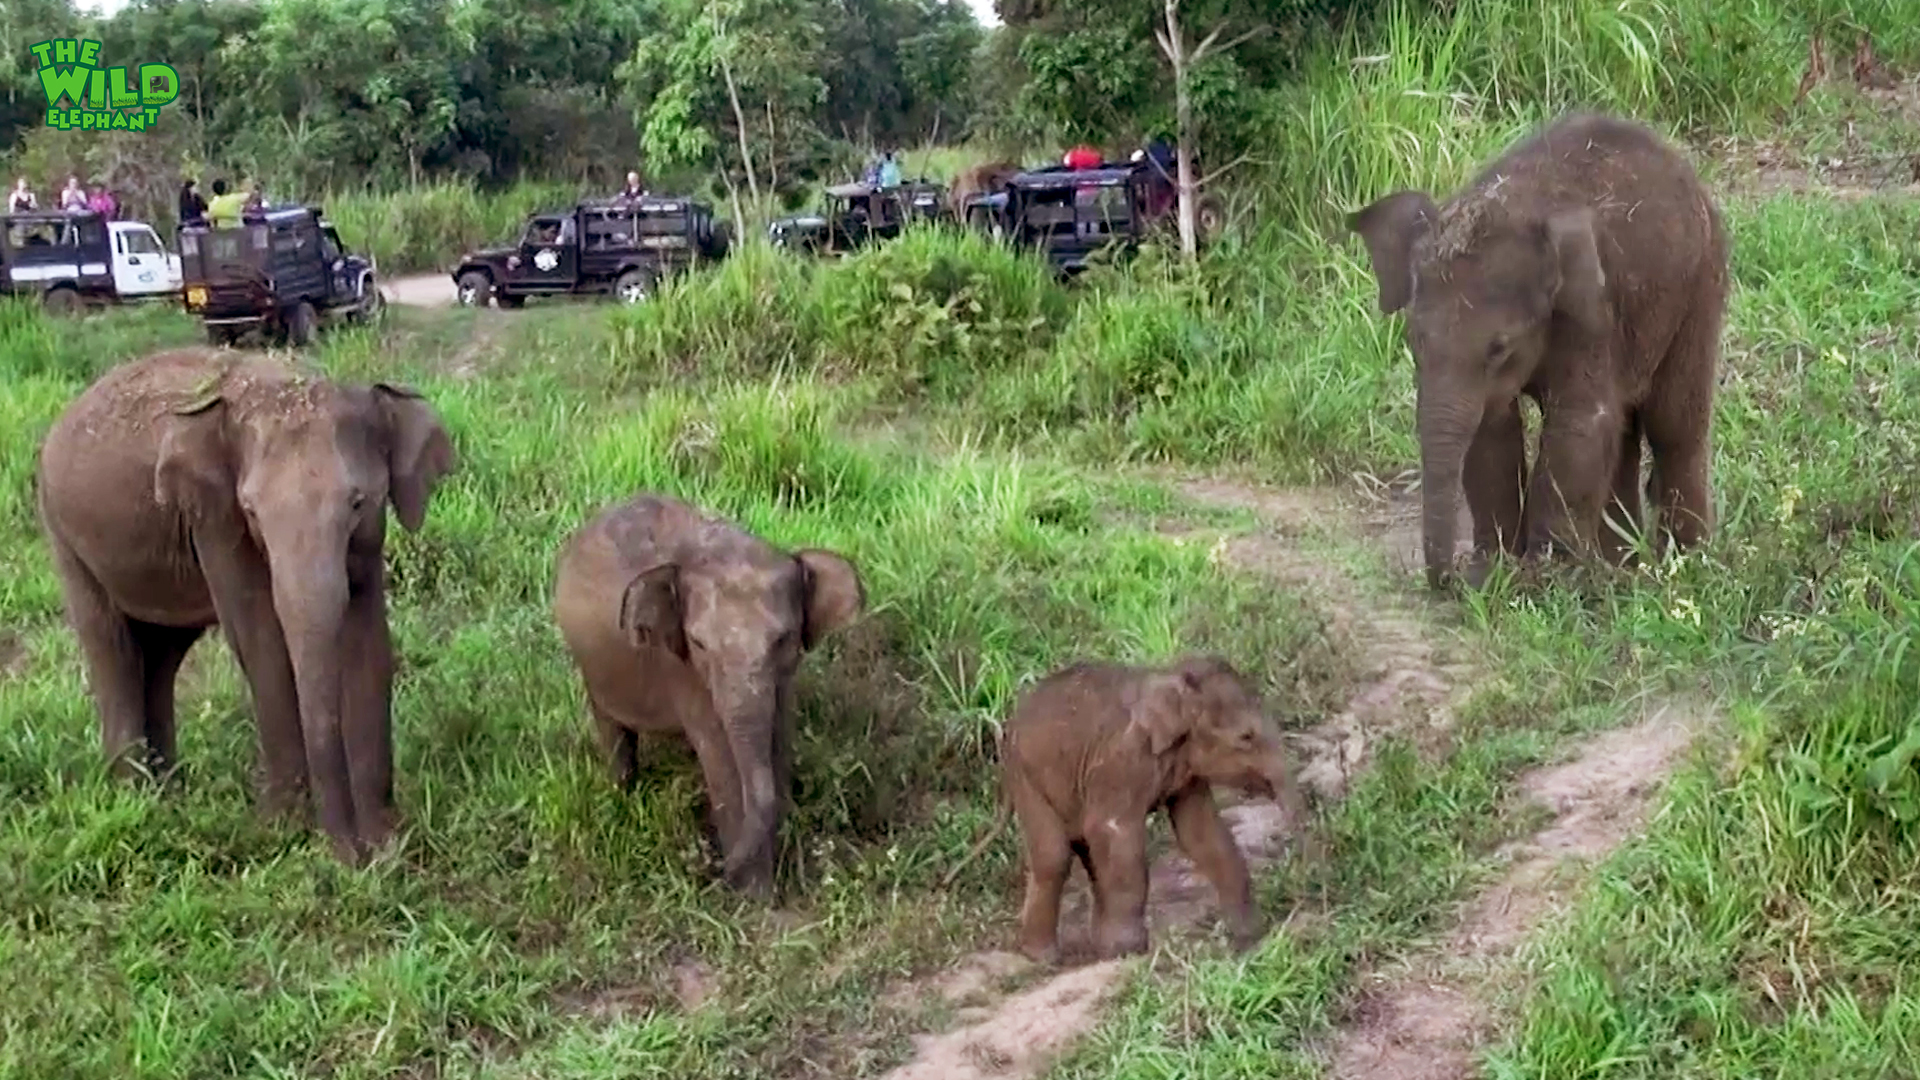 A cute baby elephant is hurt, waiting for medical officers